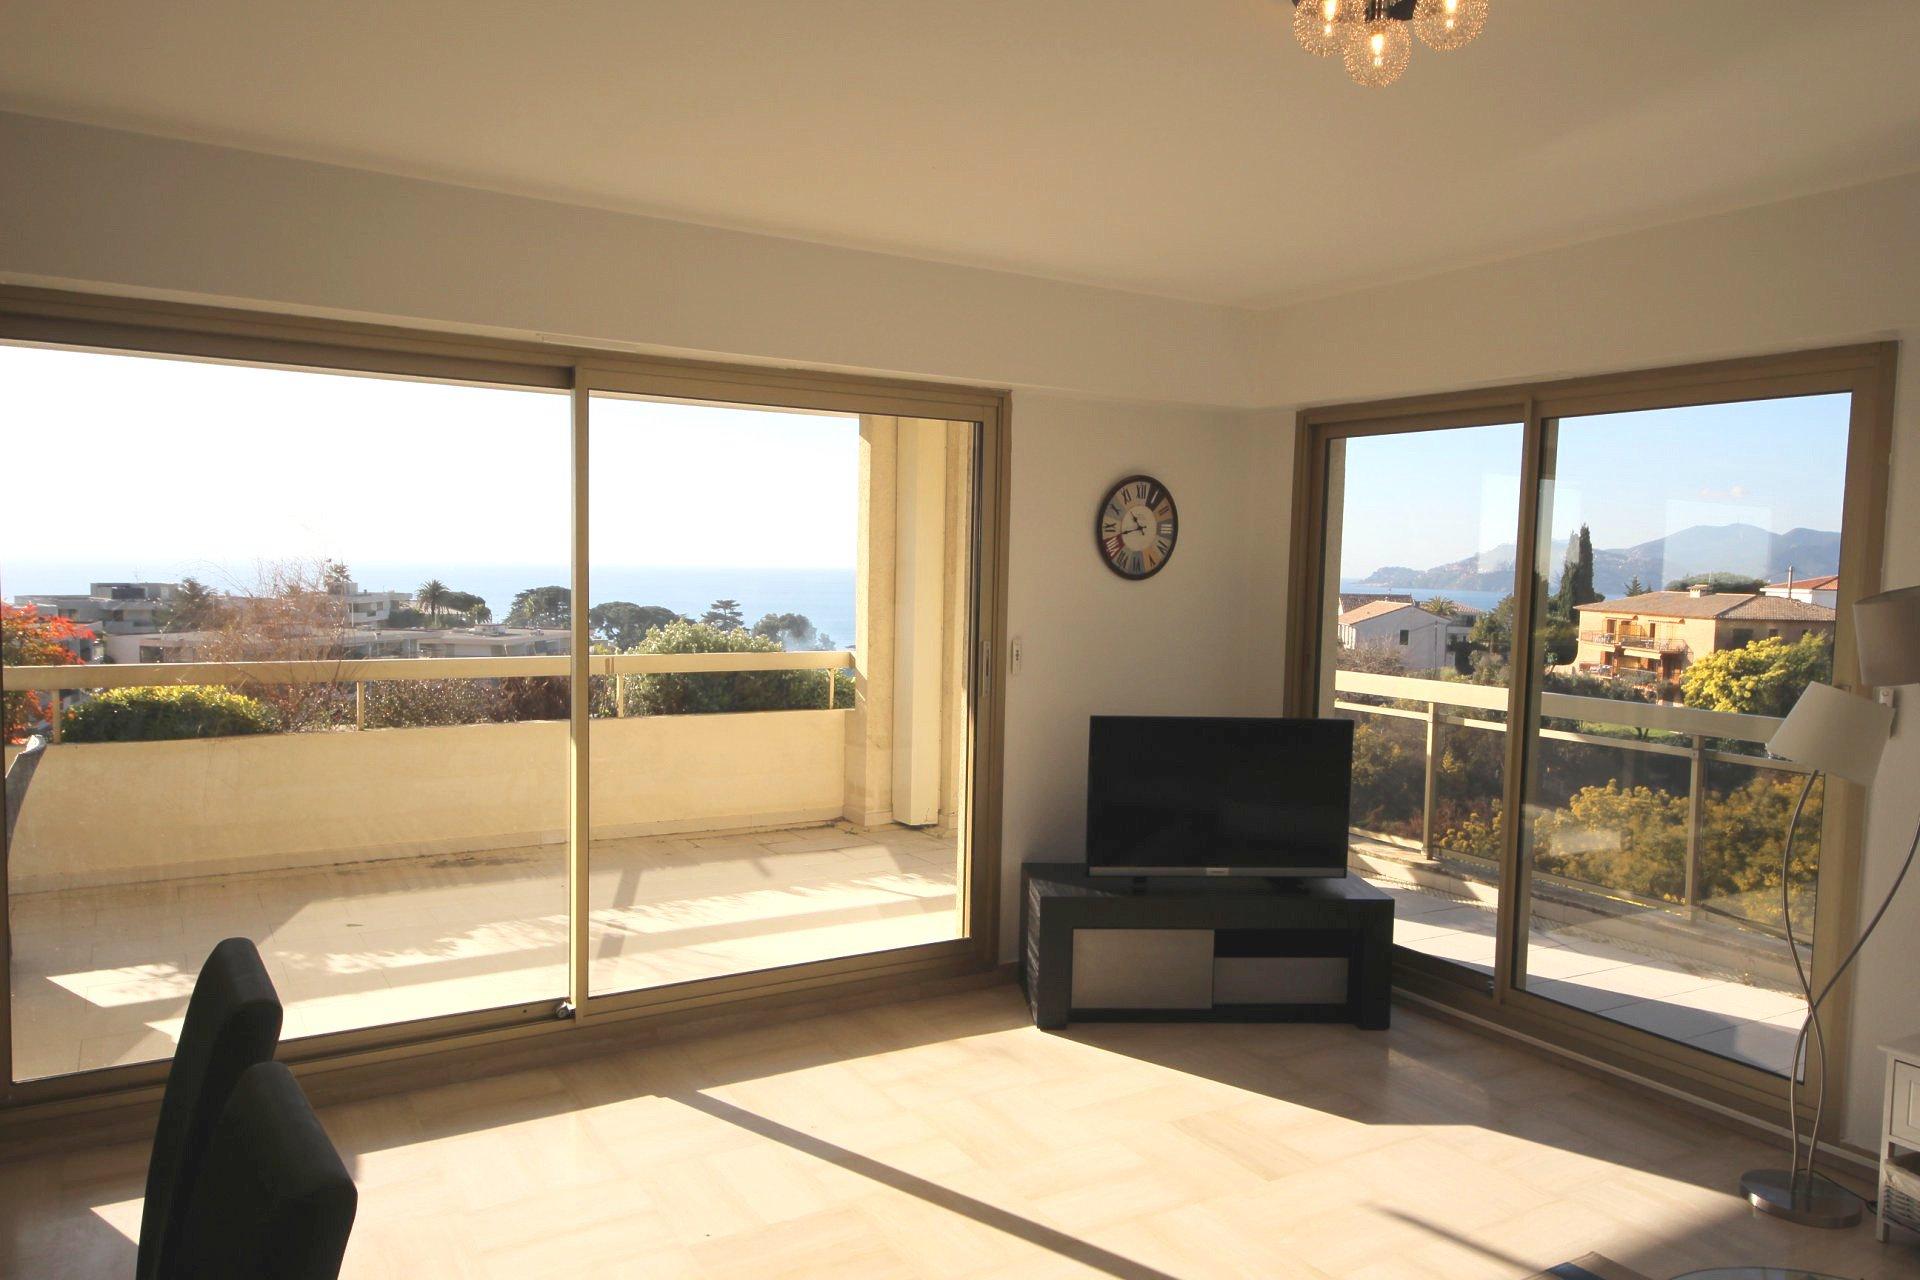 Cannes Croix des Gardes, 4p 118 sqm panoramic sea view, terrace 56m2